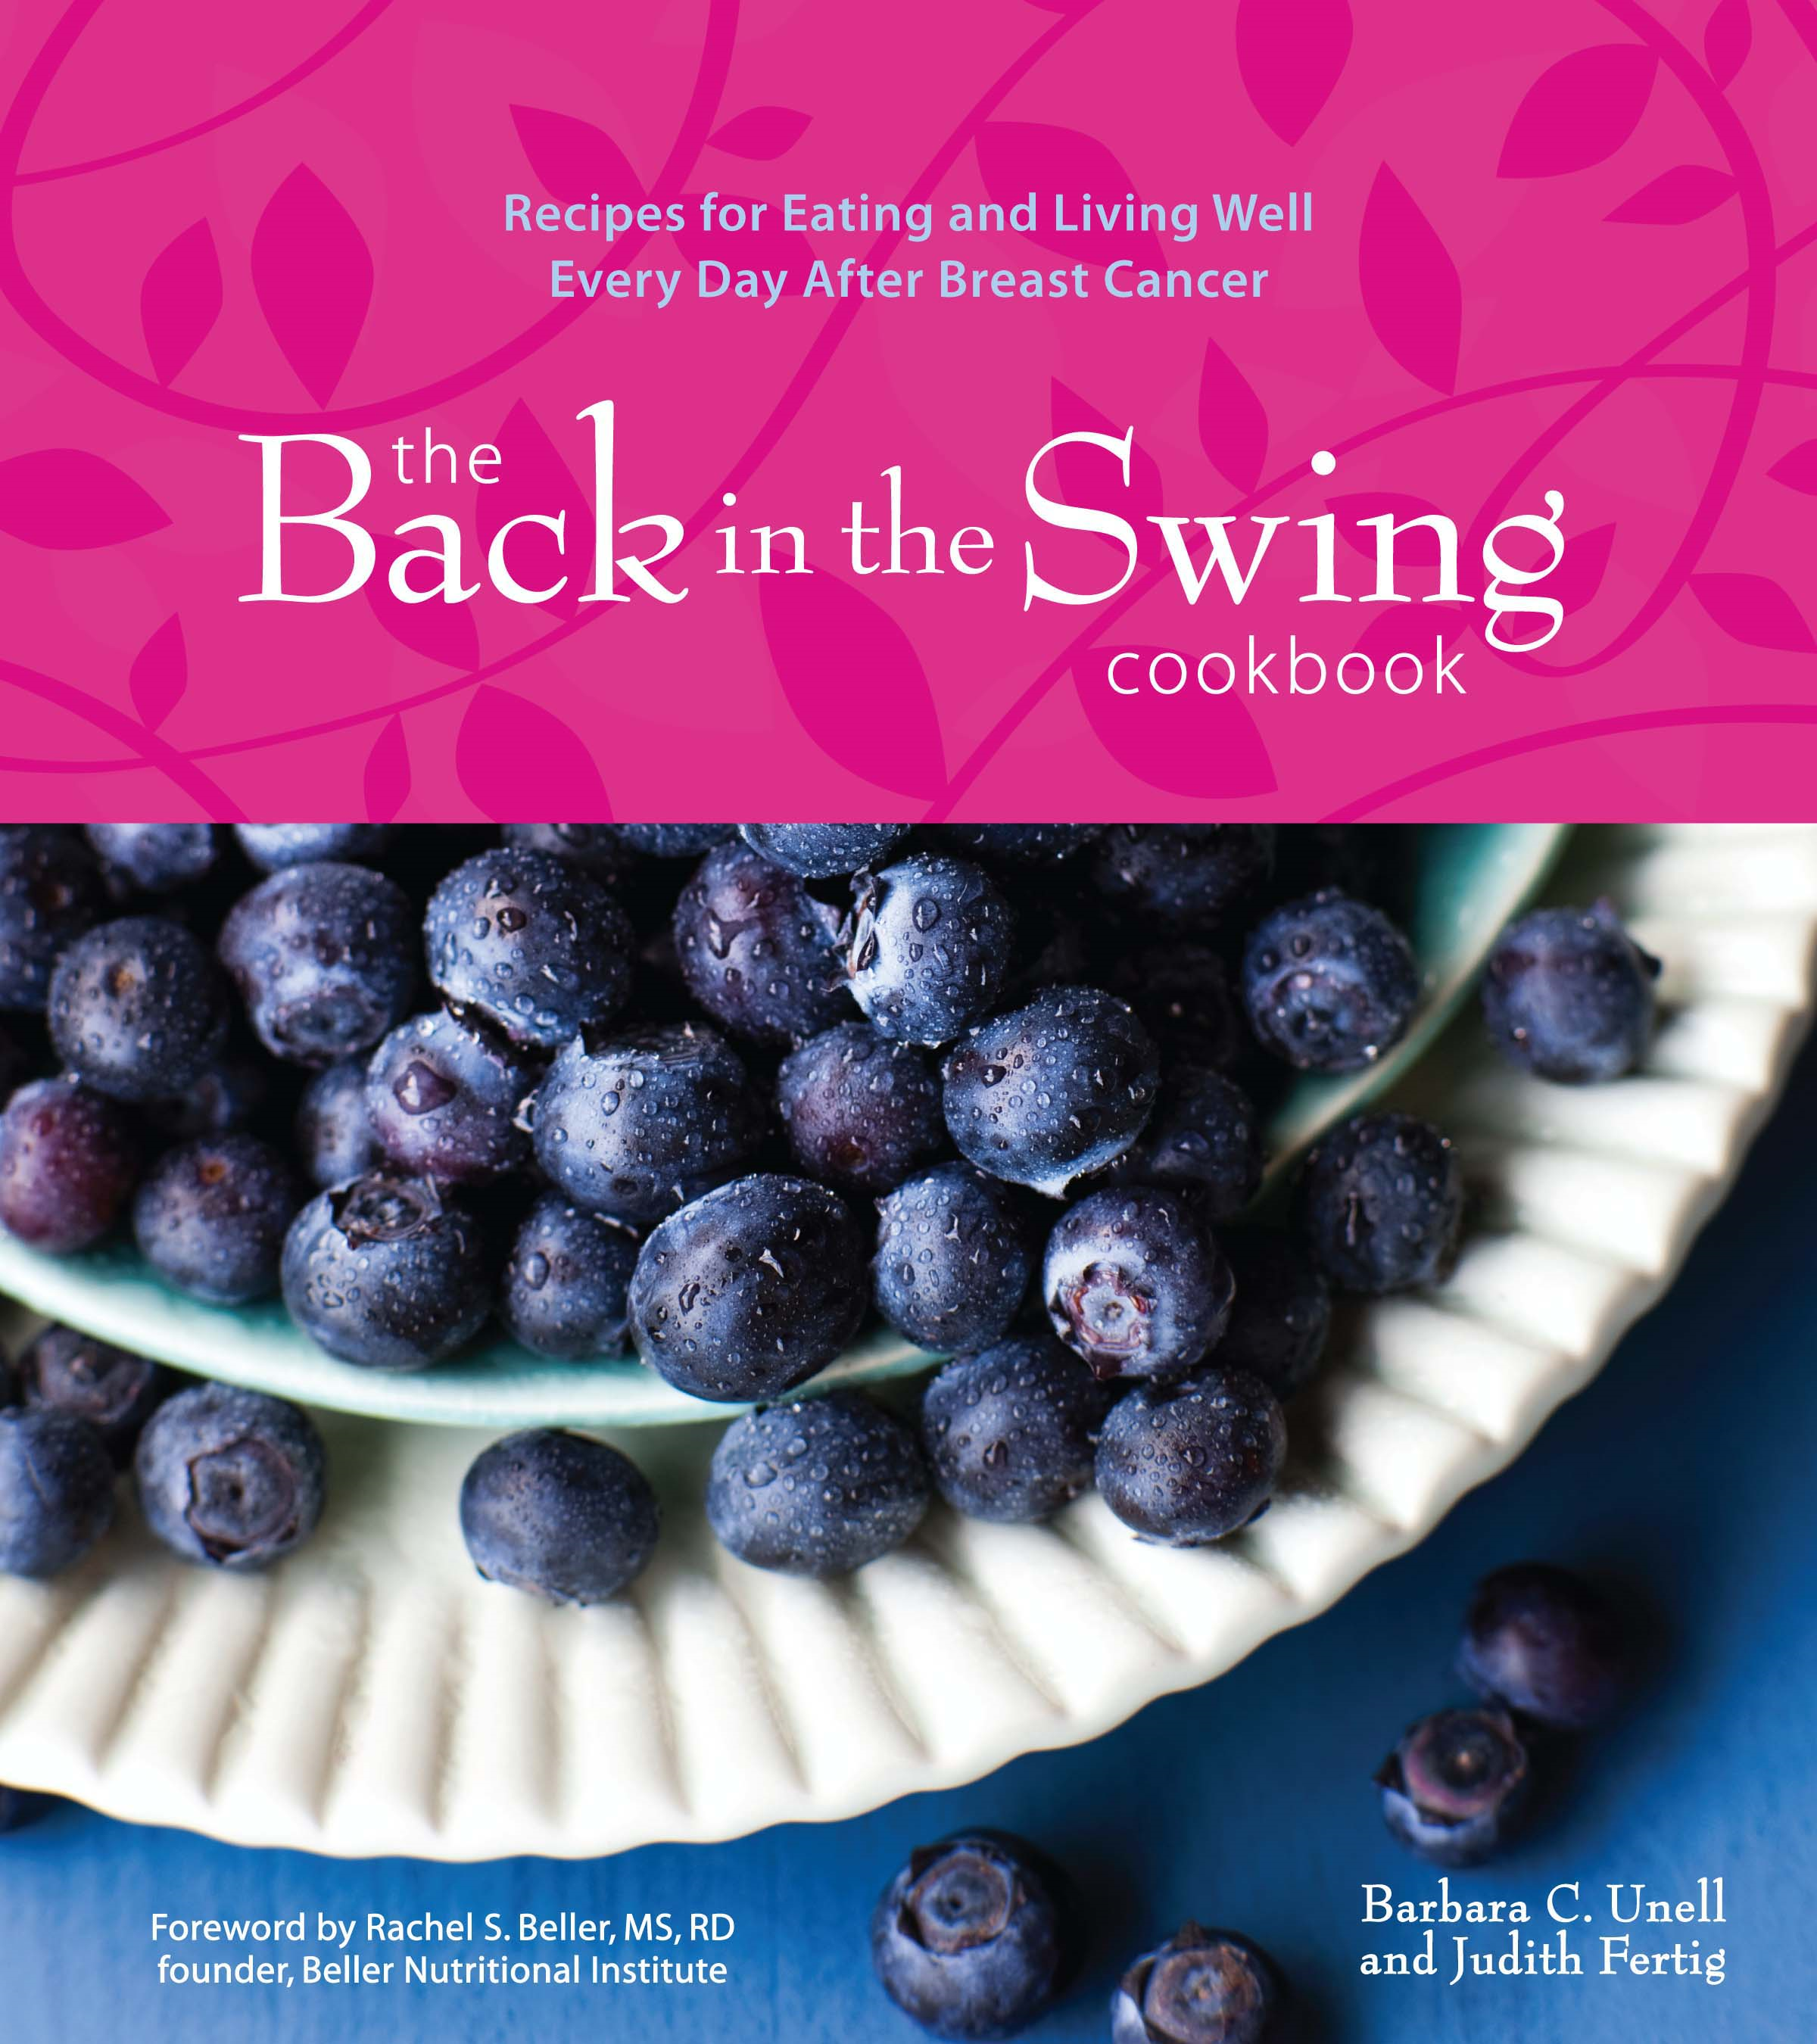 Back in the Swing Cookbook (with Video): Recipes for Eating and Living Well Every Day After Breast Cancer